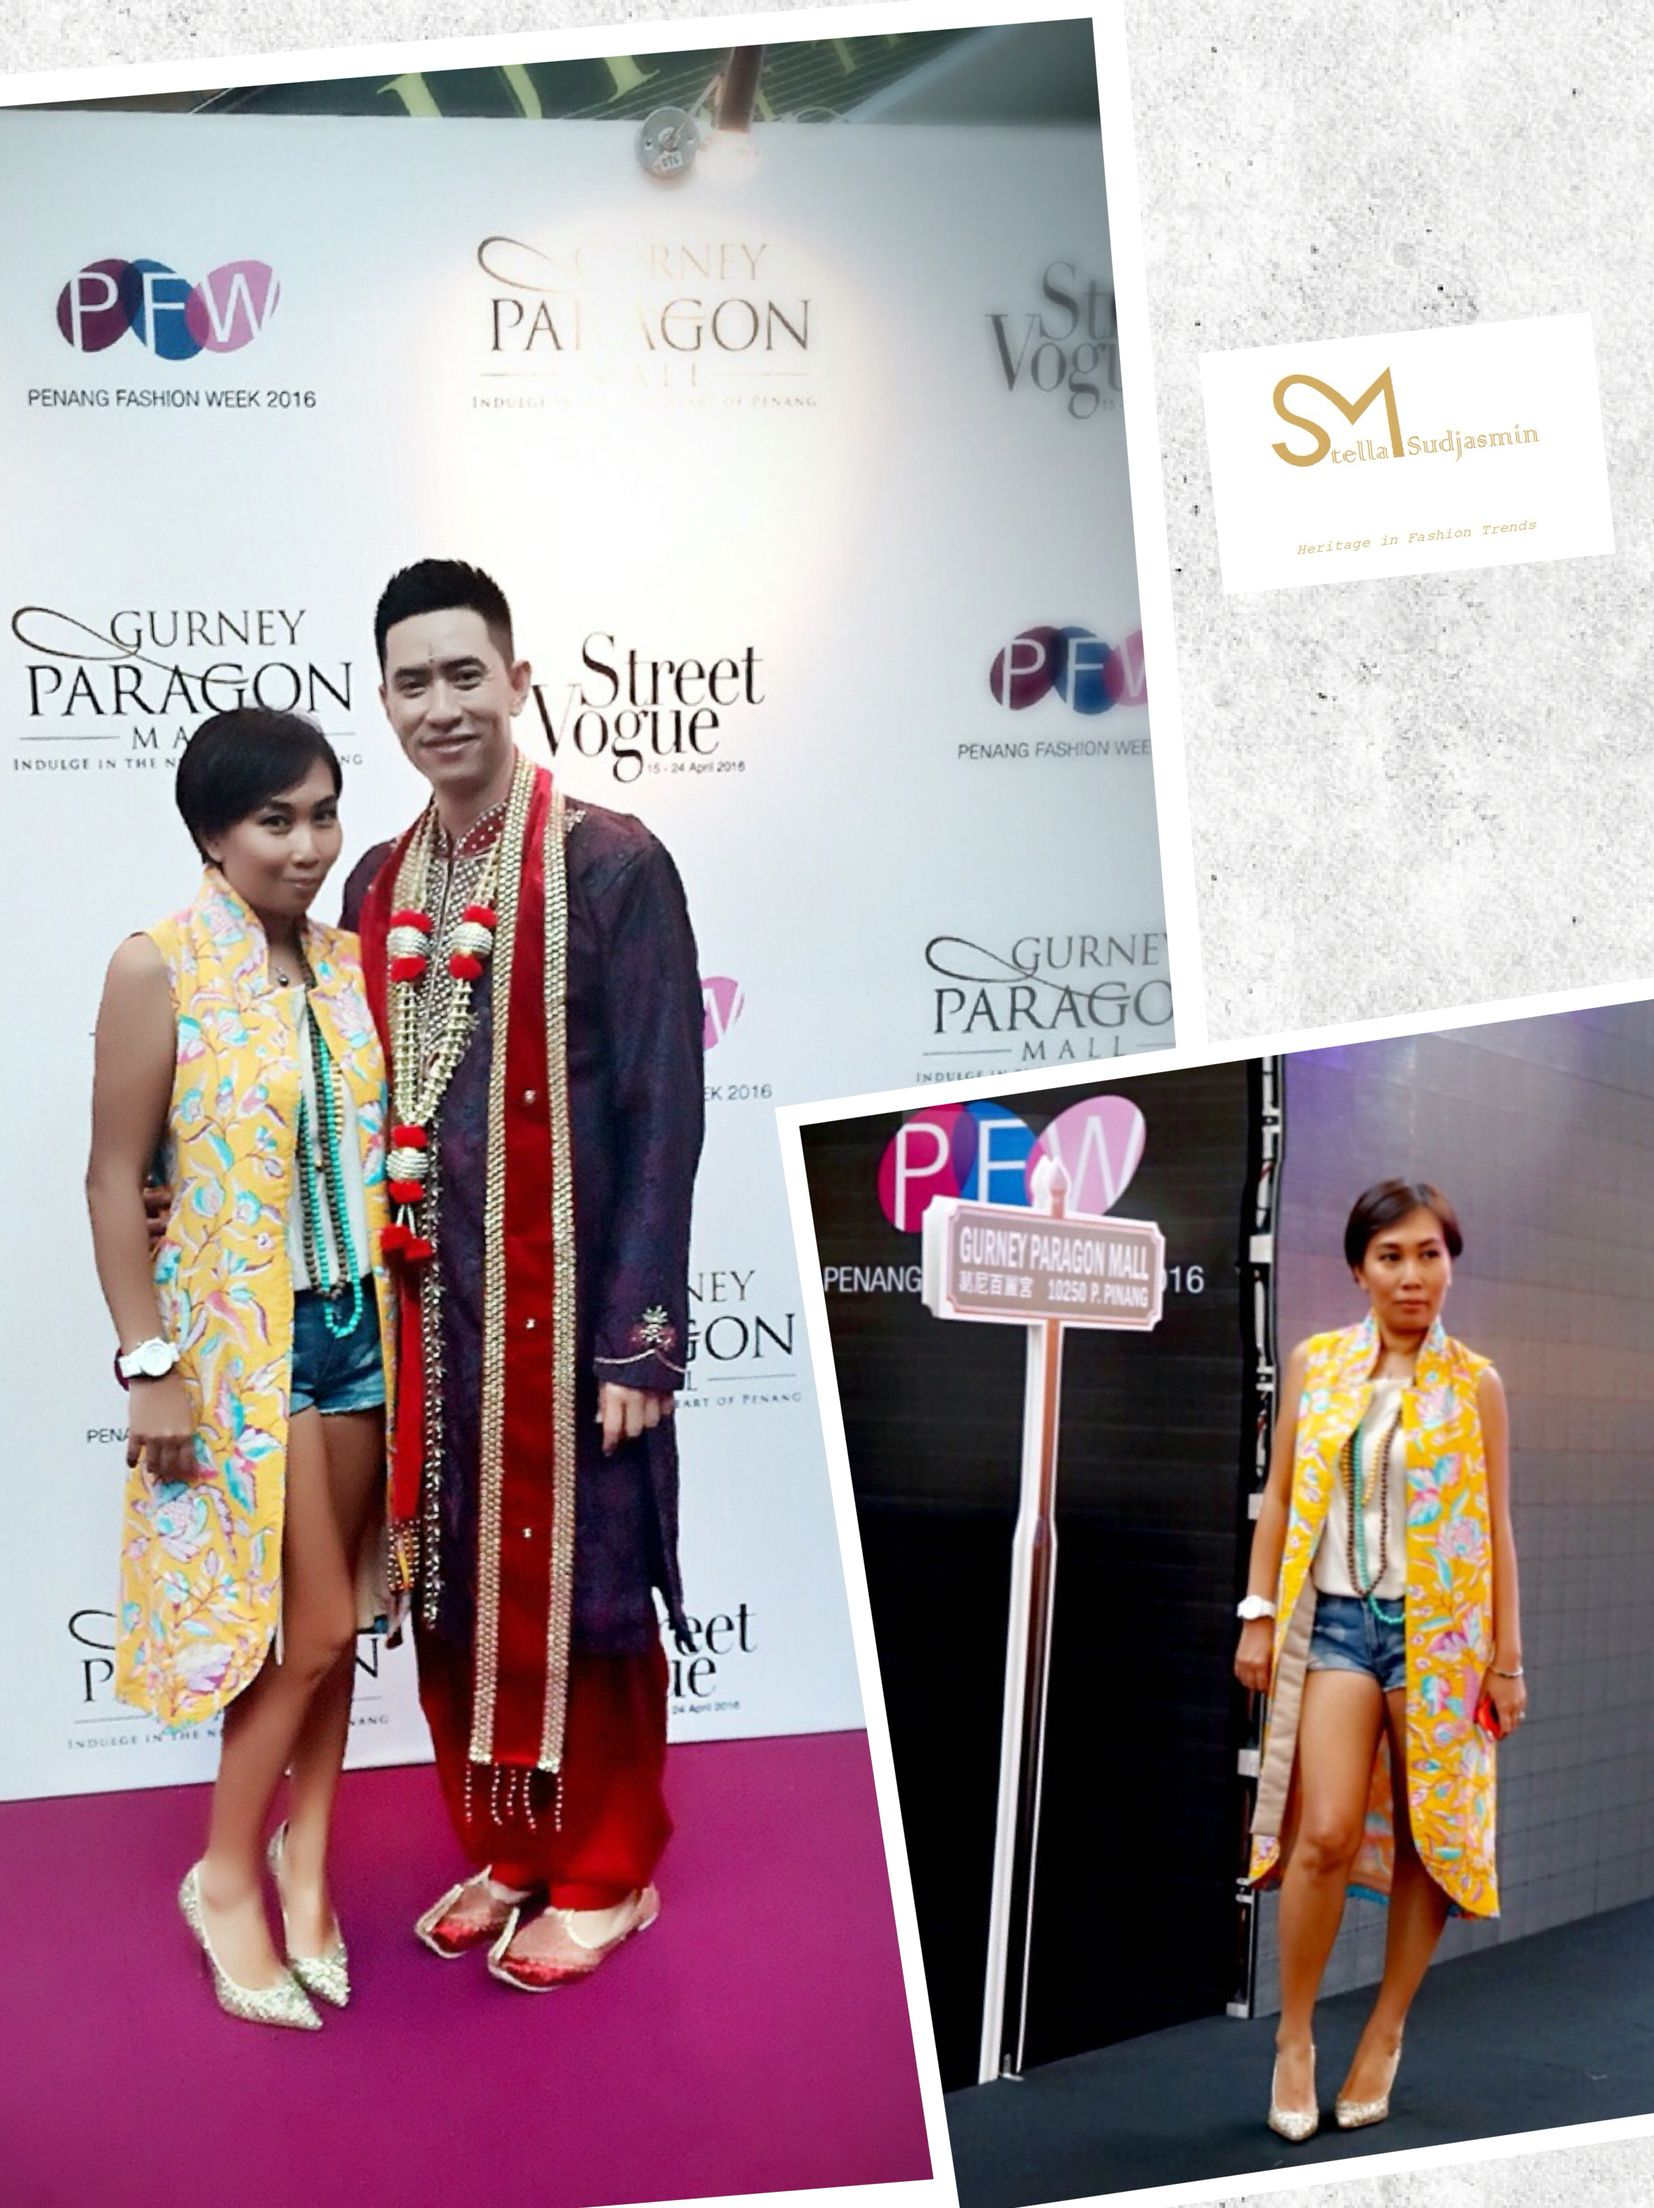 Fabulous!!! Mrs. Irene Wu, Founder of DAVE n IRENE WU at her collaboration with Brandon Tan, the designer of Bran et Daguet at Penang Fashion Week 2016. Mrs. Wu is wearing • Victoria Long Vest by Stella M Sudjasmin •